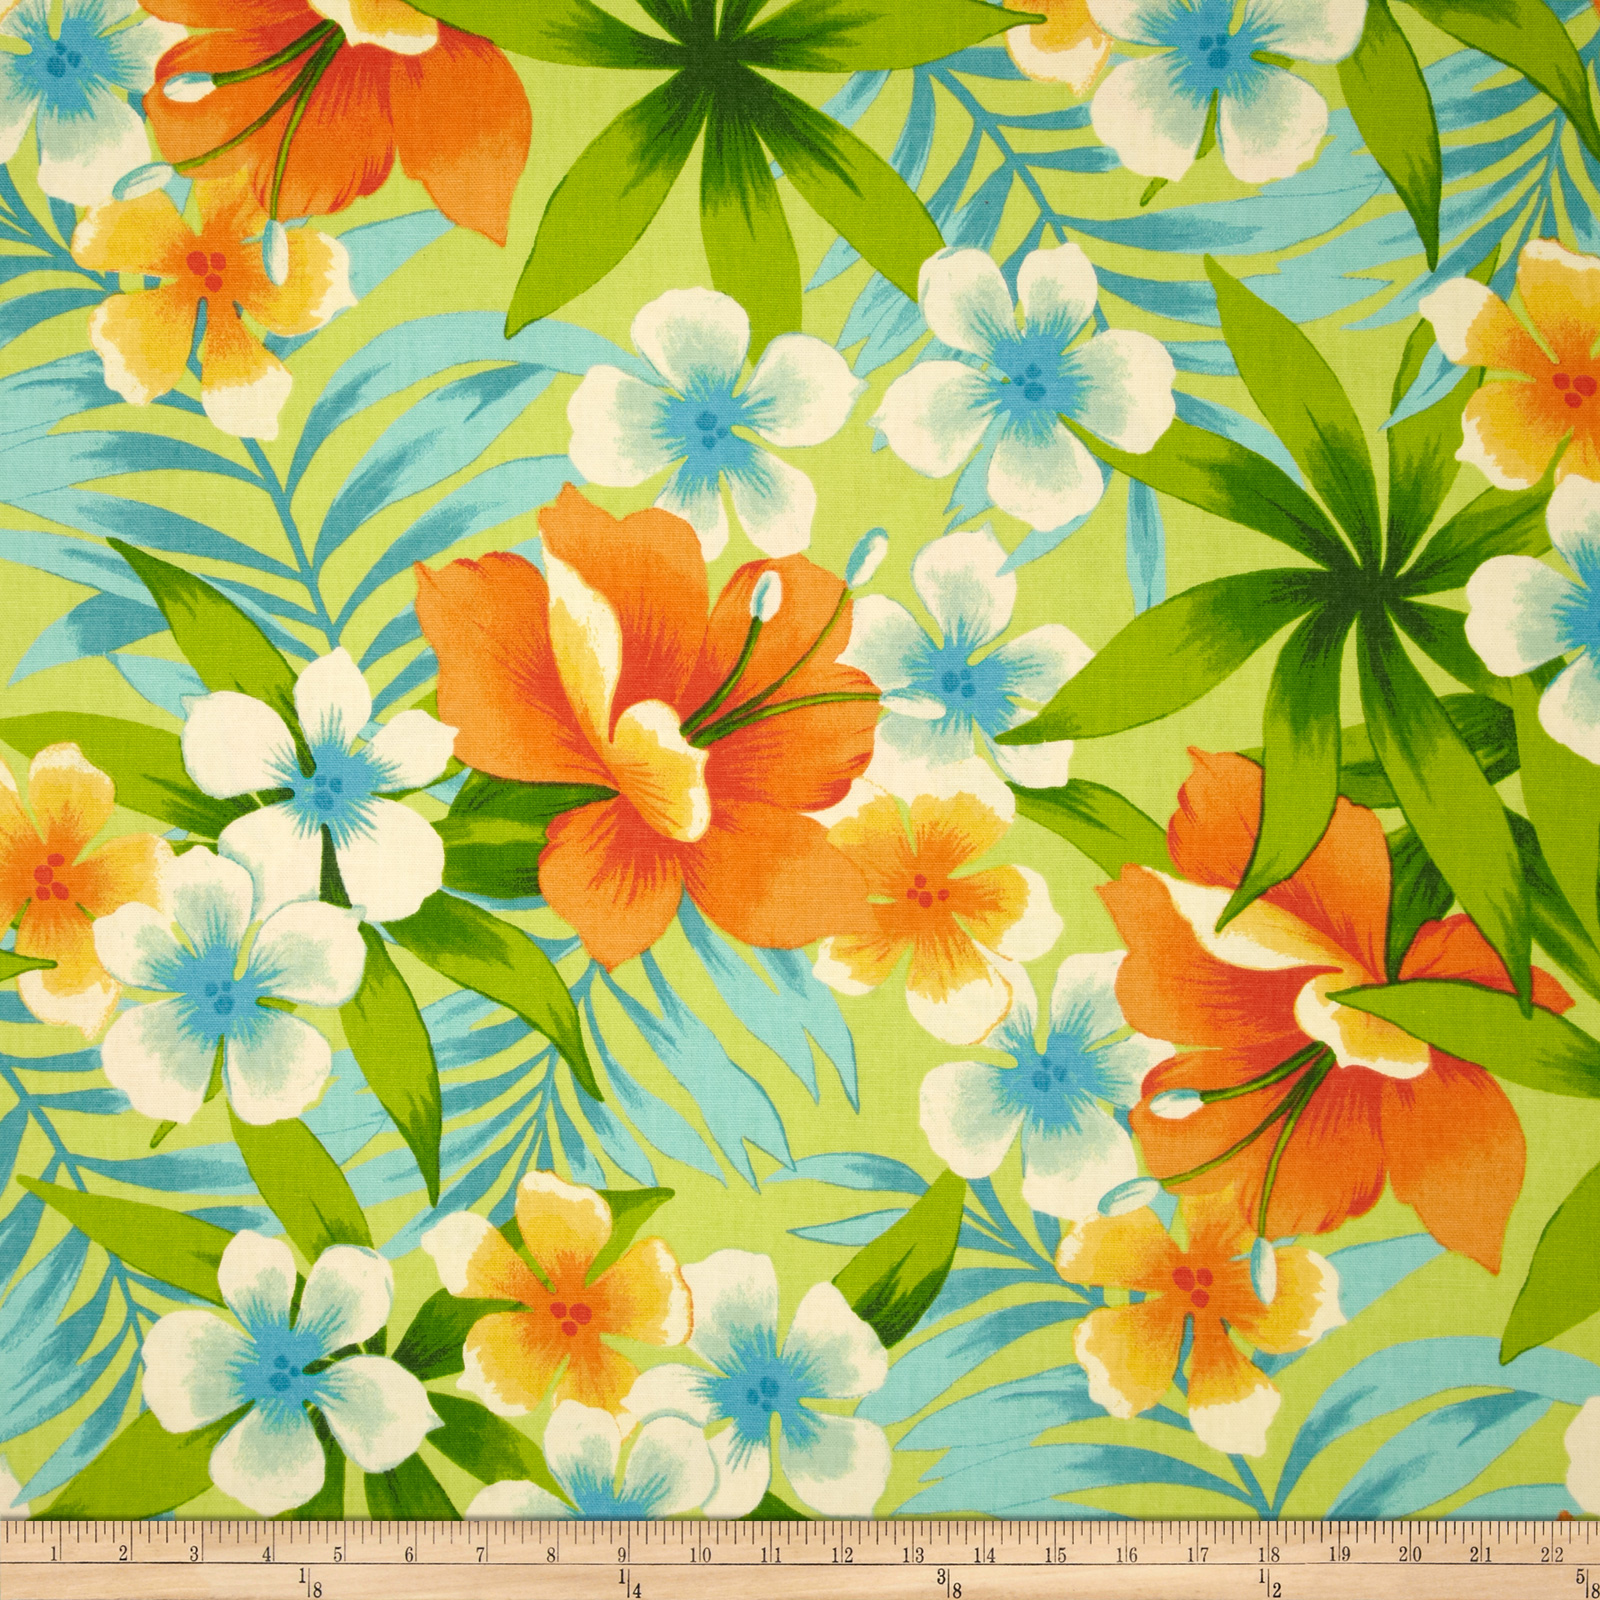 Tommy Bahama Home Sugar Beach Coral Reef Fabric by Waverly in USA